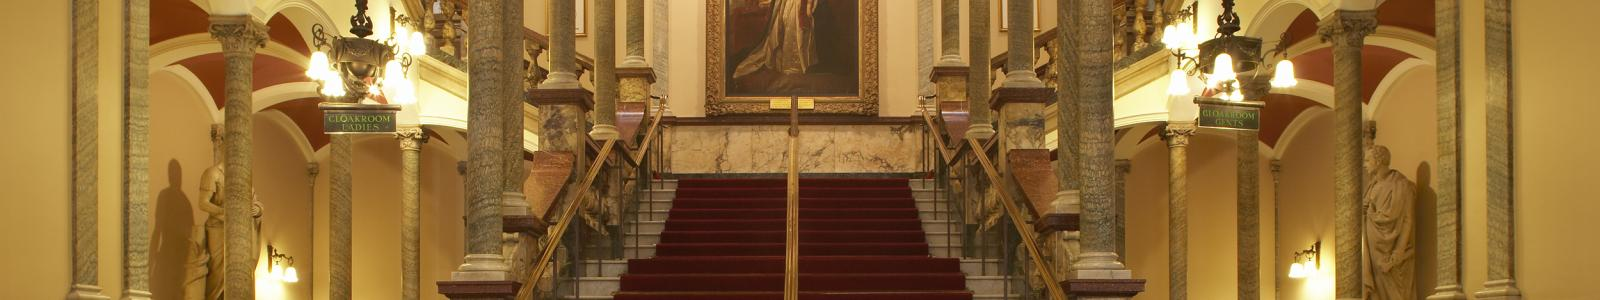 Hull City Hall main staircase.jpg